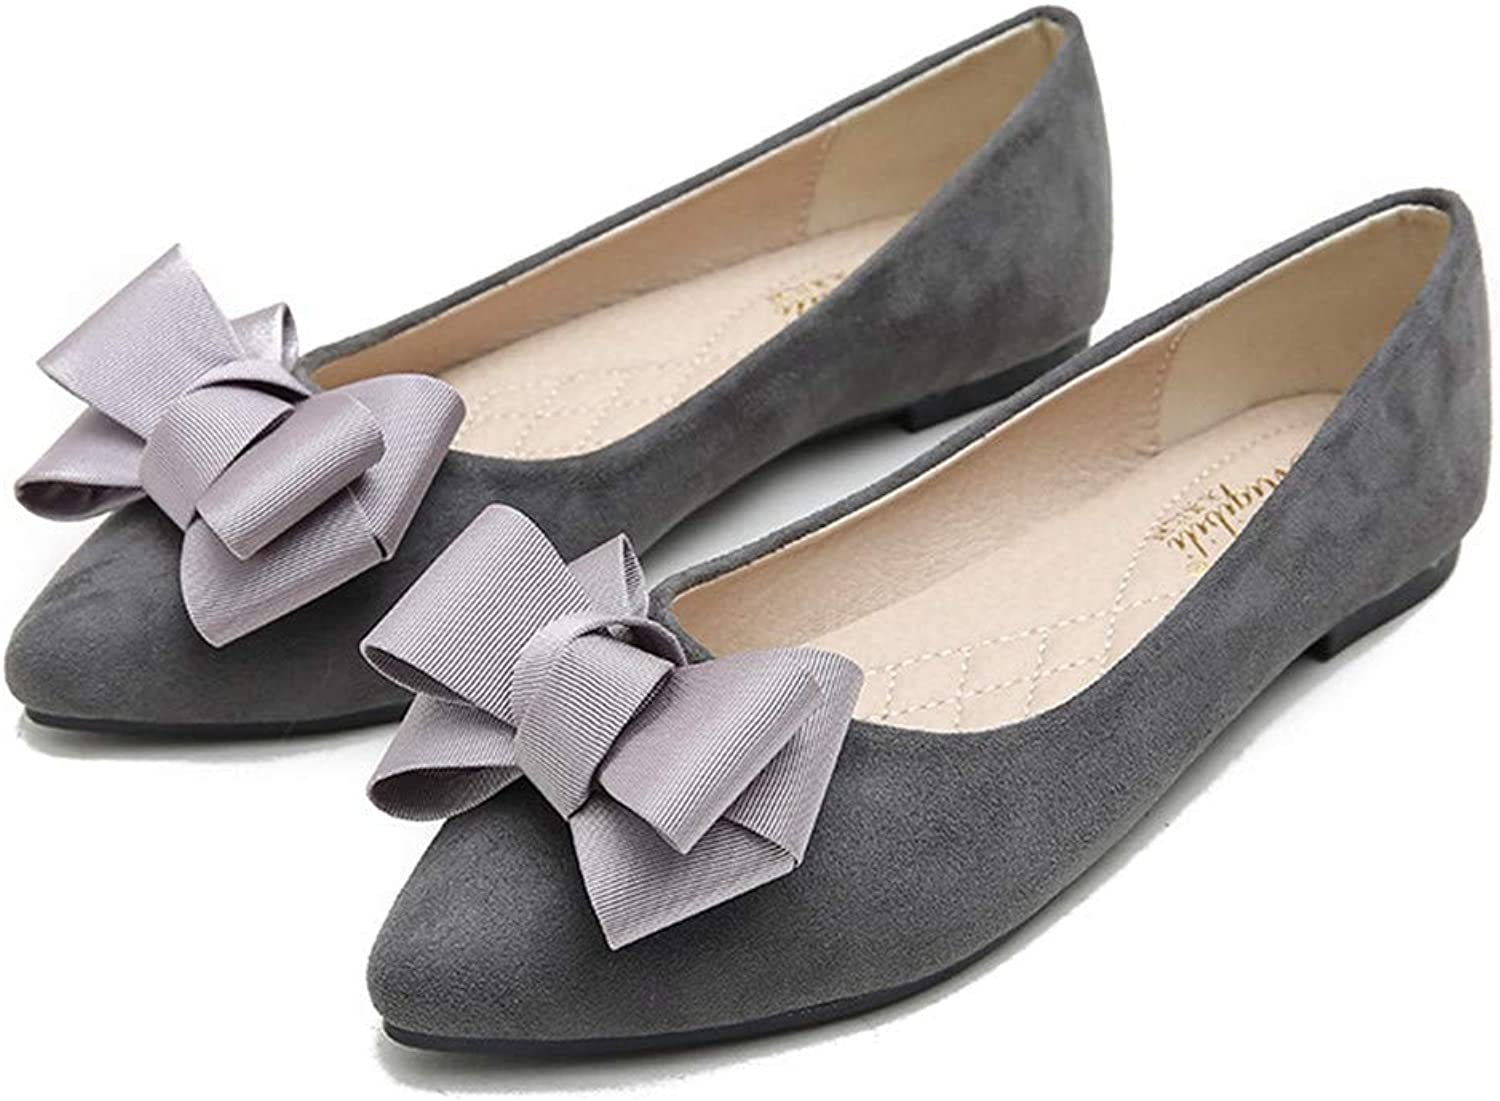 Kyle Walsh Pa Women Elegant Flats shoes Bow Knot Pointed Toe Suede Ladies Casual Moccasins